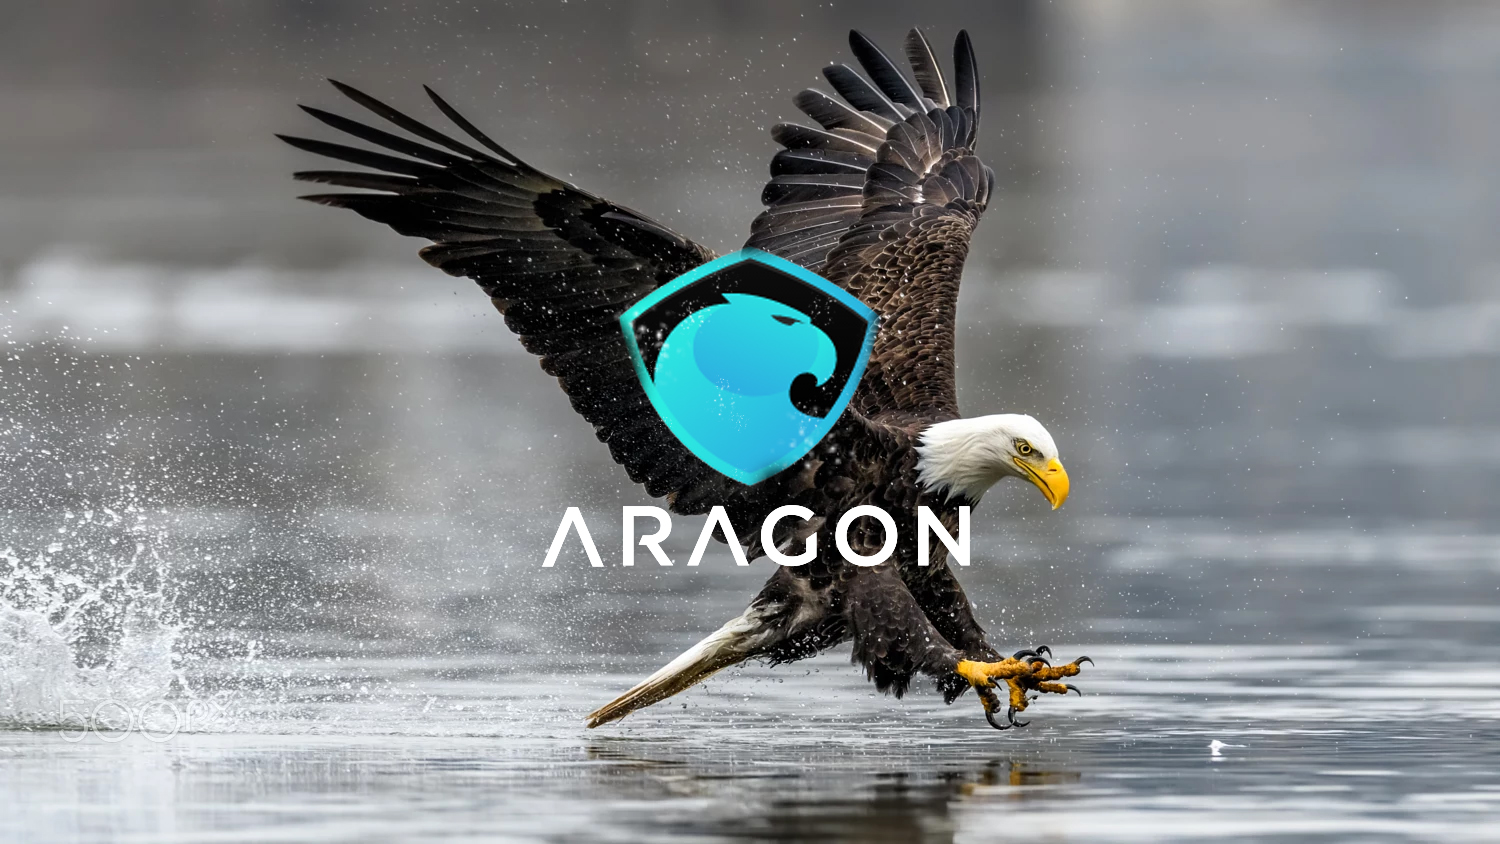 aragon chatrooms Vip exclusive: my visitors don't miss out on visitors who come by to check you out as a vip, you can start making valuable connections today become a vip.